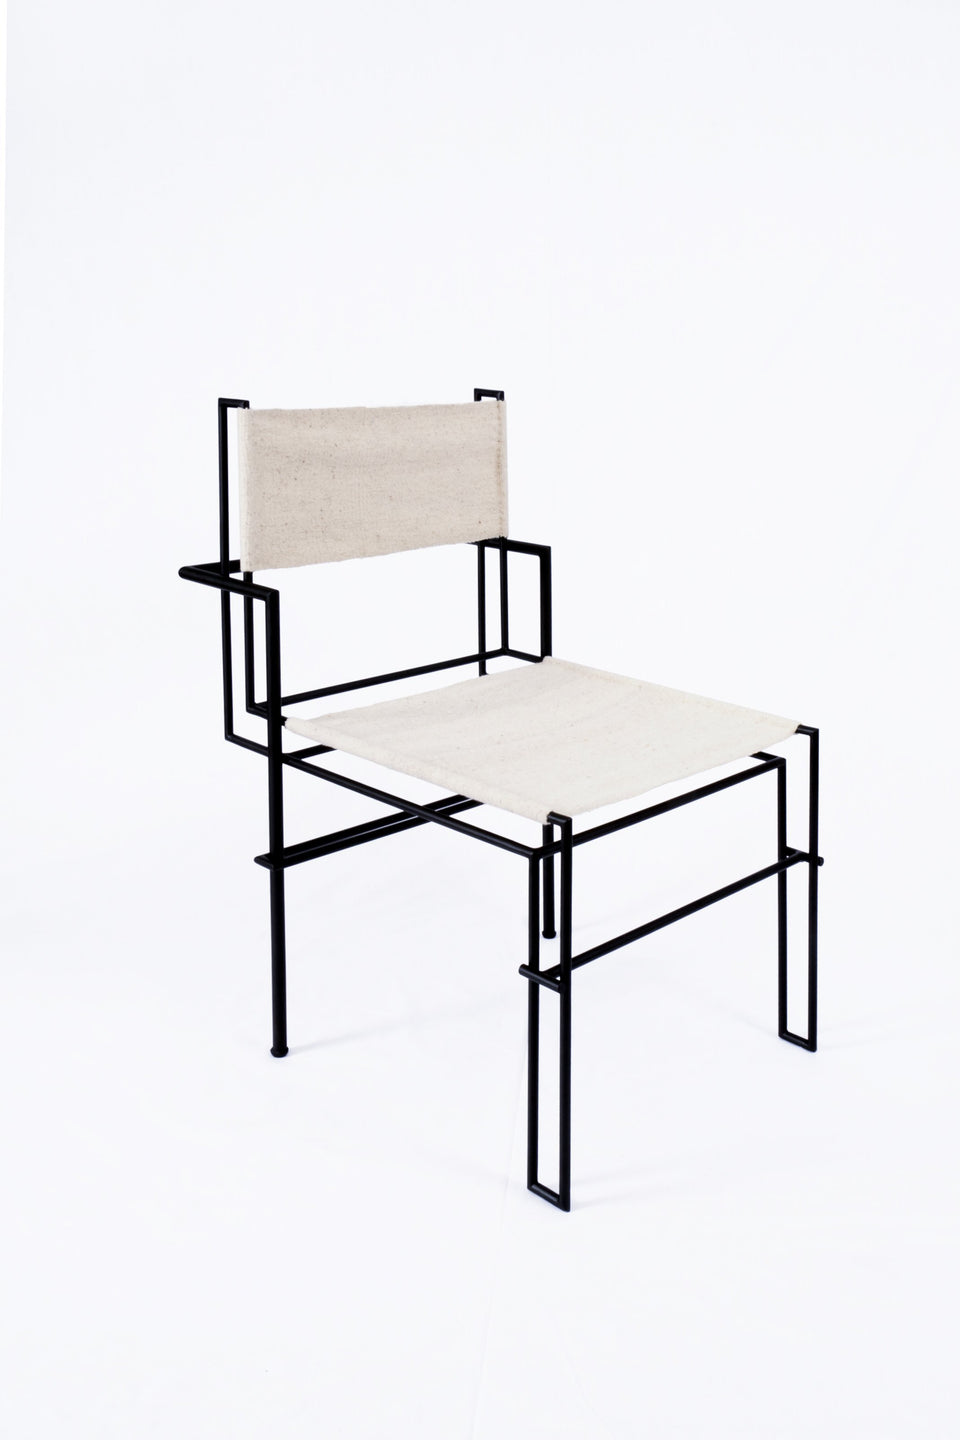 Design Disrupters Casbah black metal chair frame and white wool